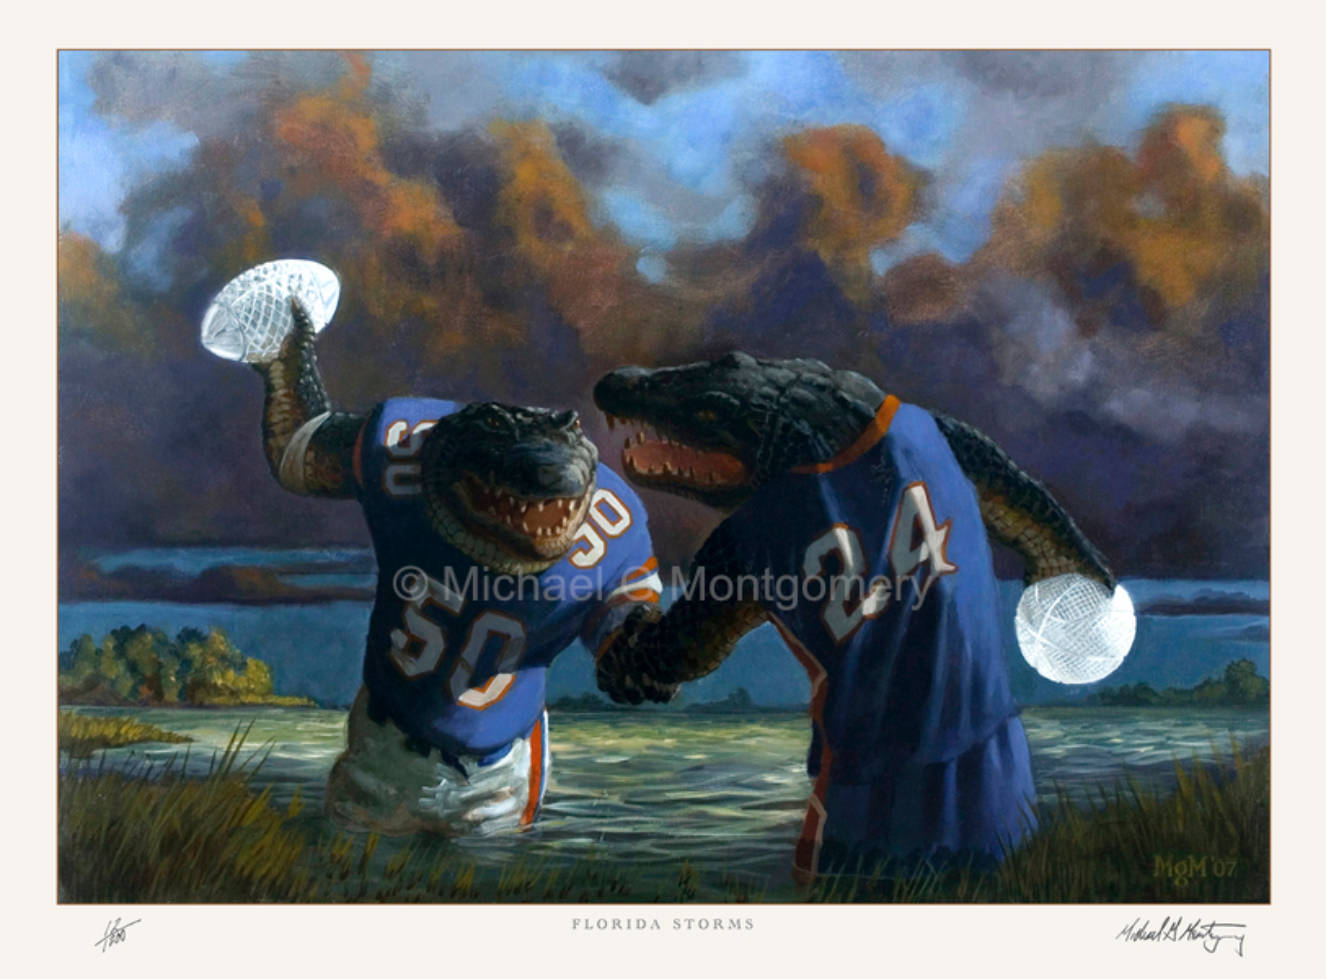 A football gator and a basketball gator each holding championship trophies and shaking hands in a swamp